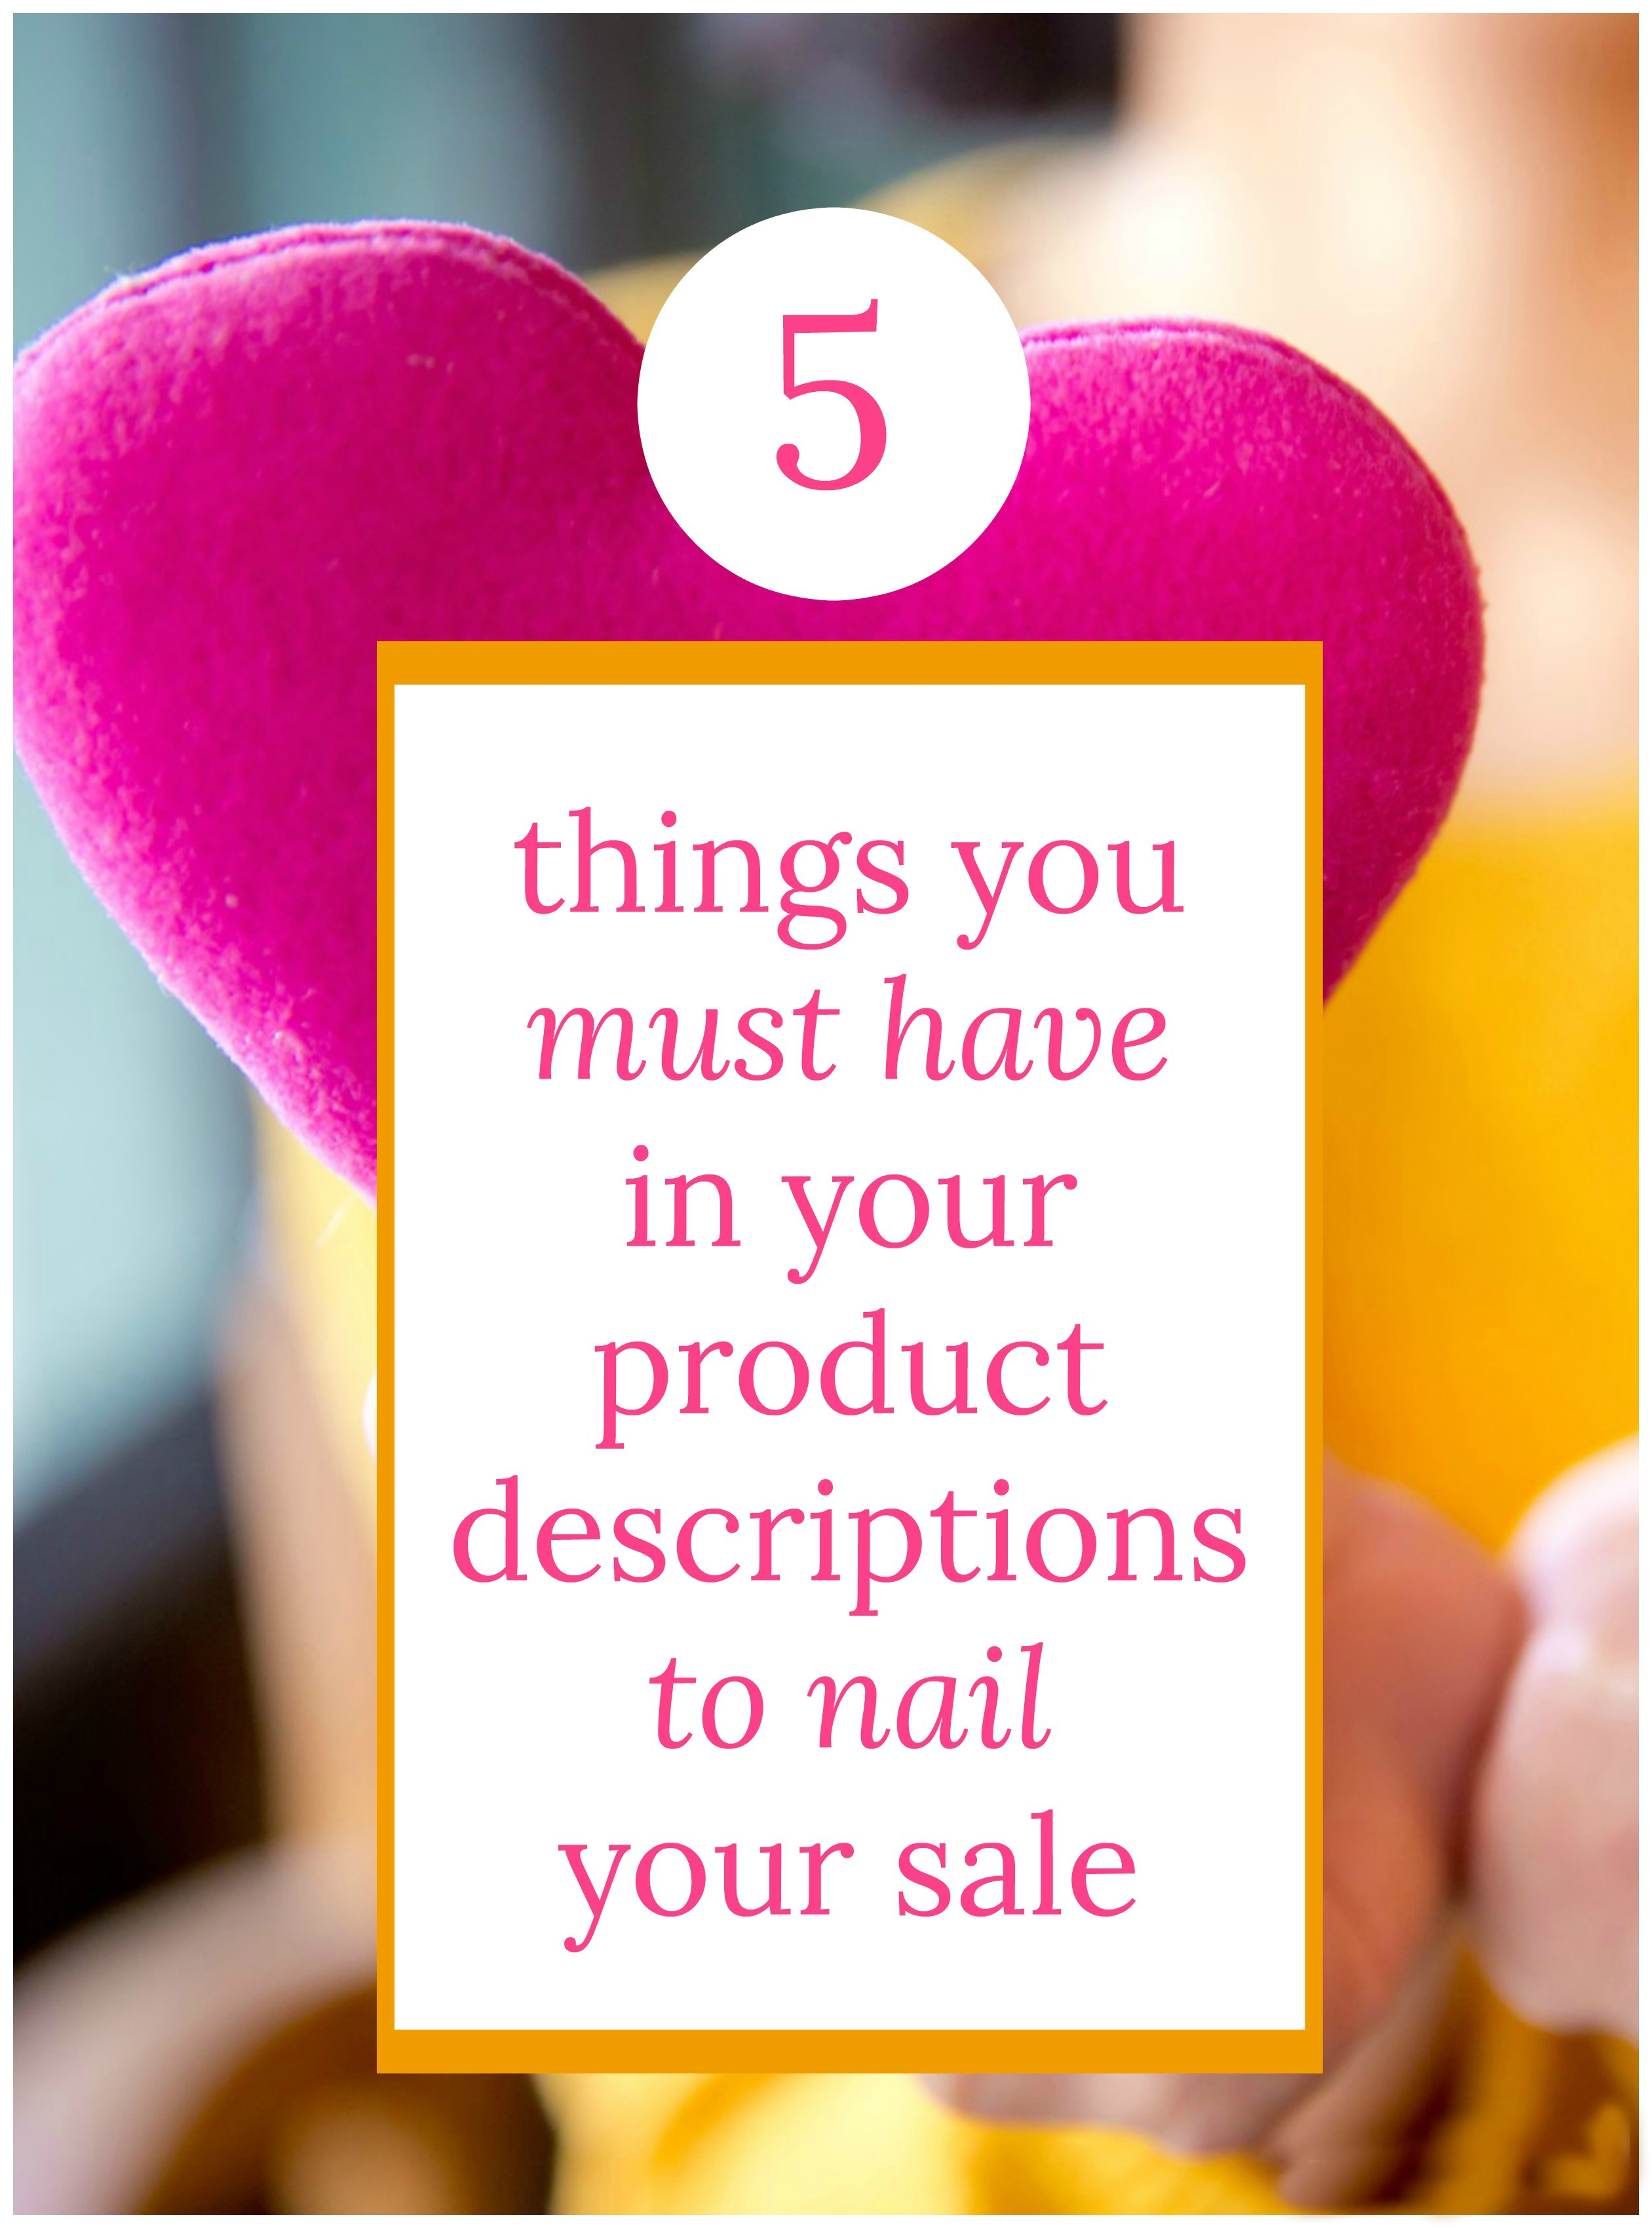 Ecommerce Product Descriptions: 5 Tips that Sell Your Product